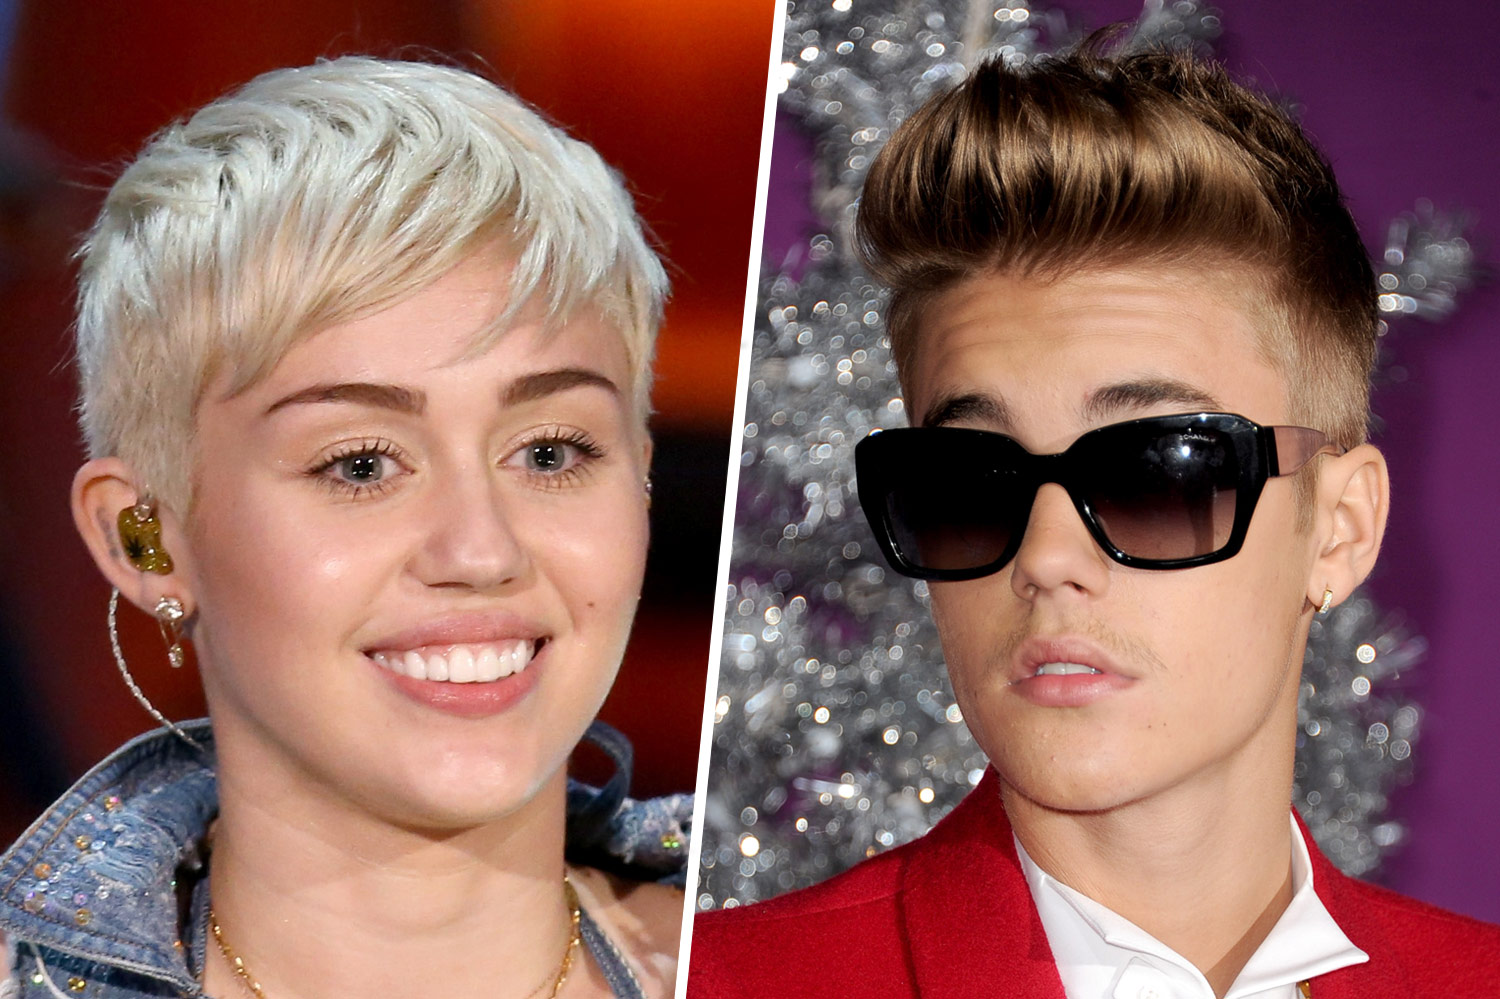 justin bieber flirting with miley cyrus Miley cyrus gives justin bieber advice: pay people to make sure you don't get in trouble.